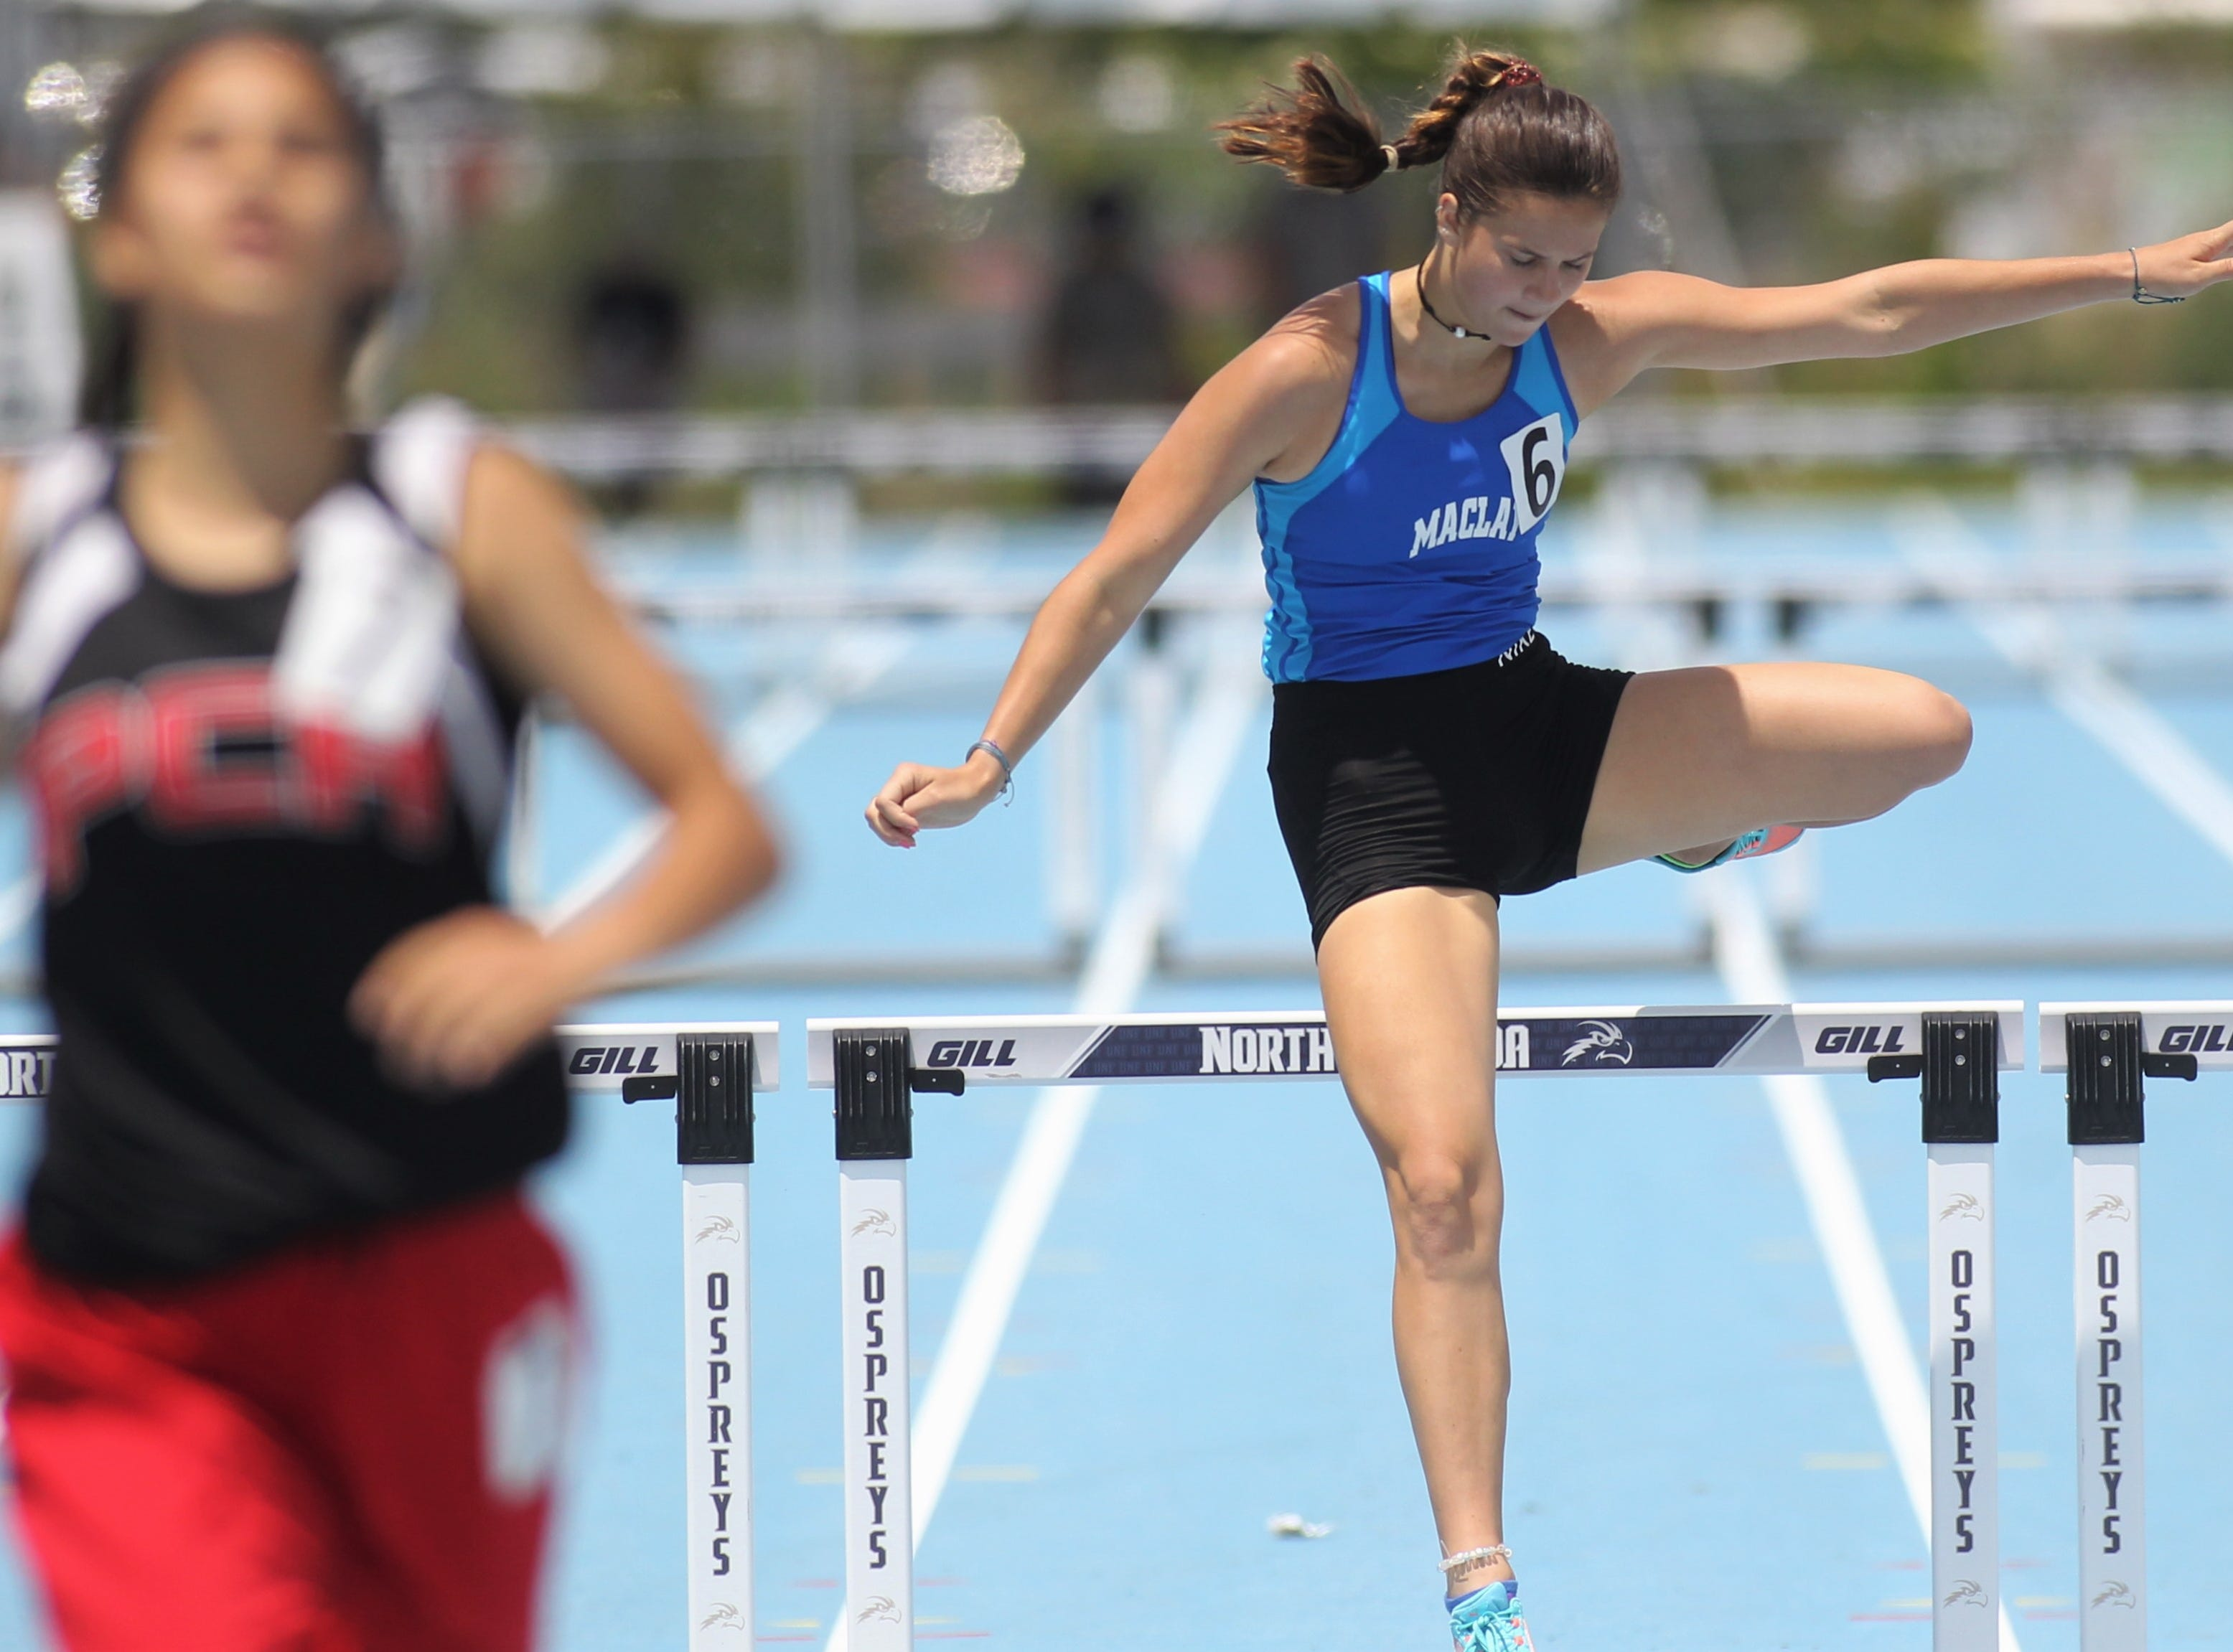 Maclay senior Kenzie Mazziotta runs the 300m hurdles at the FHSAA Track and Field State Championships at UNF's Hodges Stadium in Jacksonville on May 4, 2019.